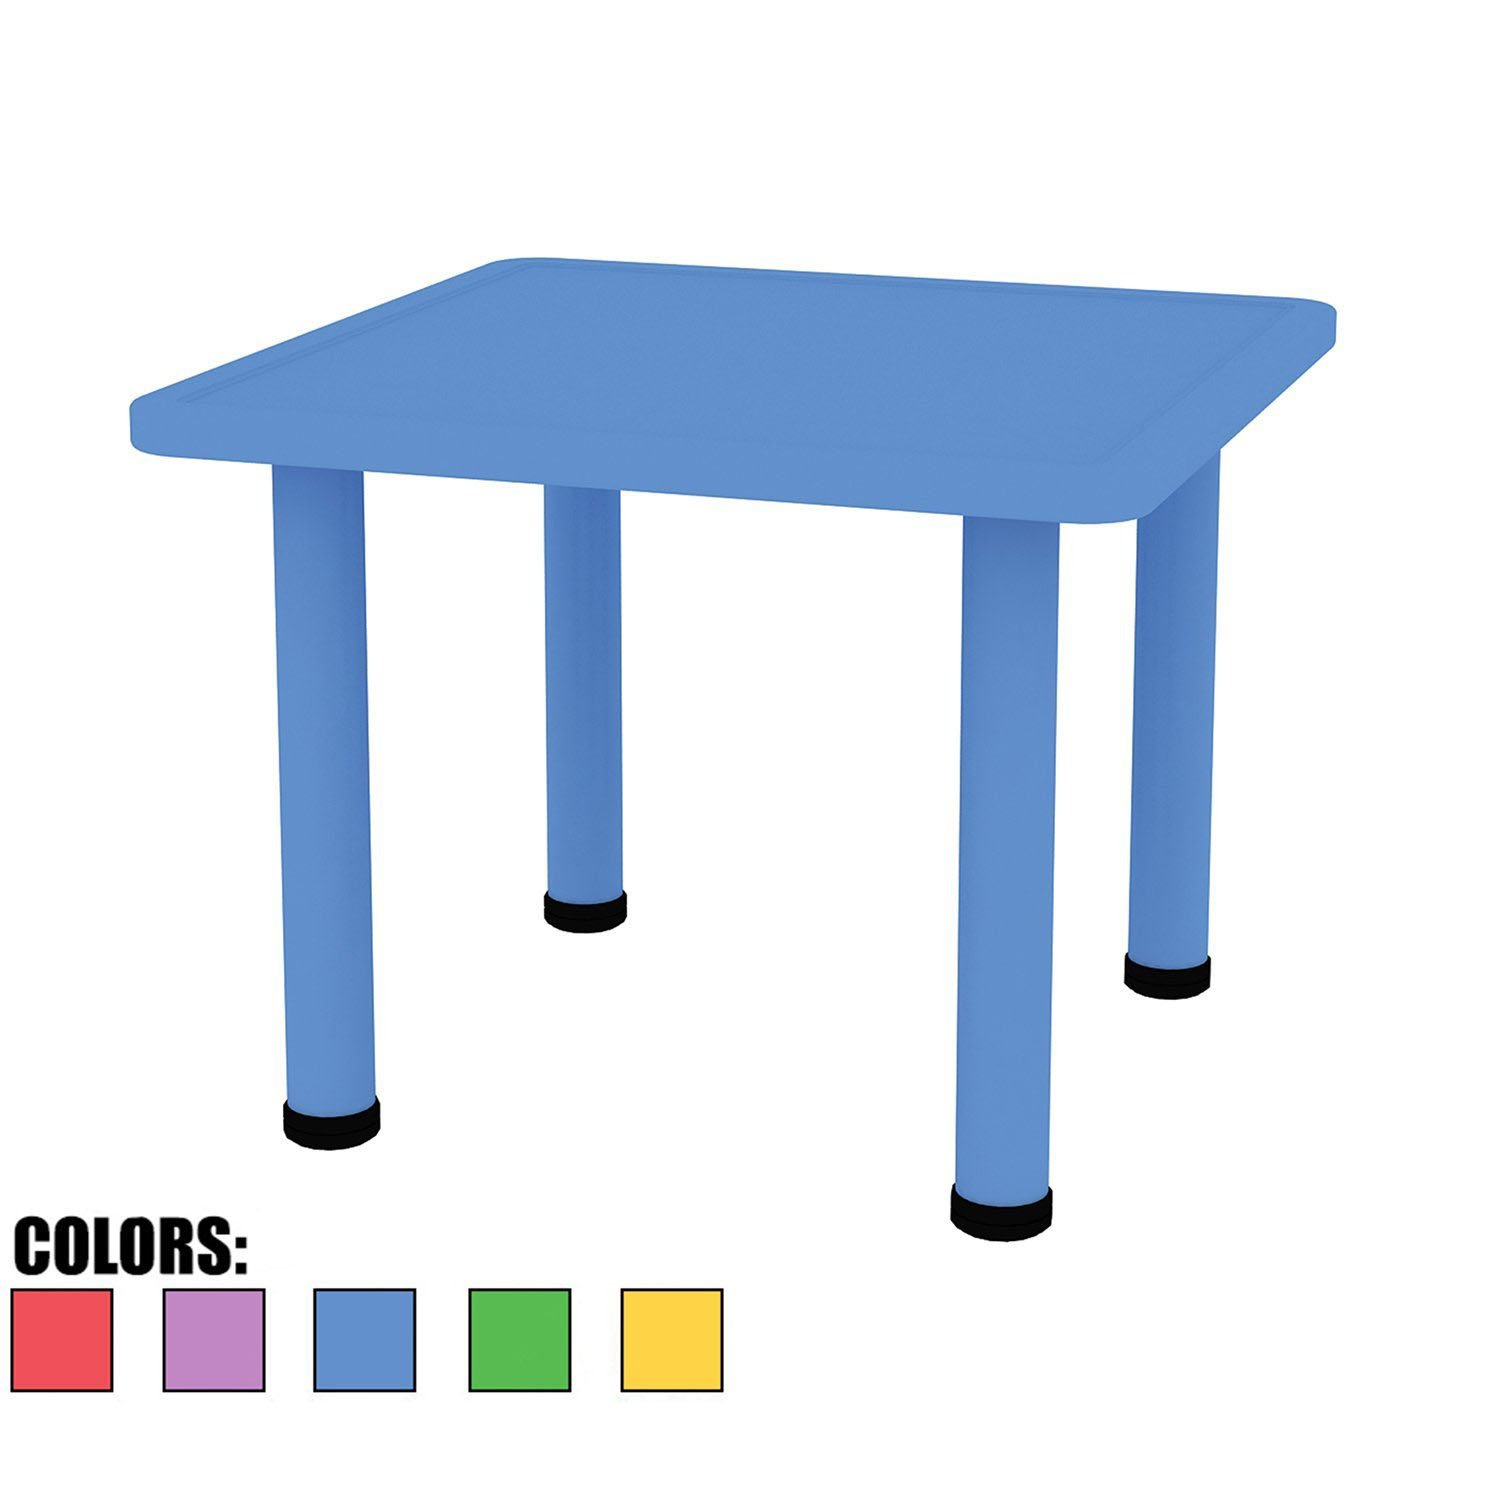 2xhome - Blue - Kids Table - Height Adjustable 21.5 inches to 22.5 inches - Square Shaped Plastic Activity Table with Metal Legs for Preschool School Learn Play 24'' x 24'' by 2xhome